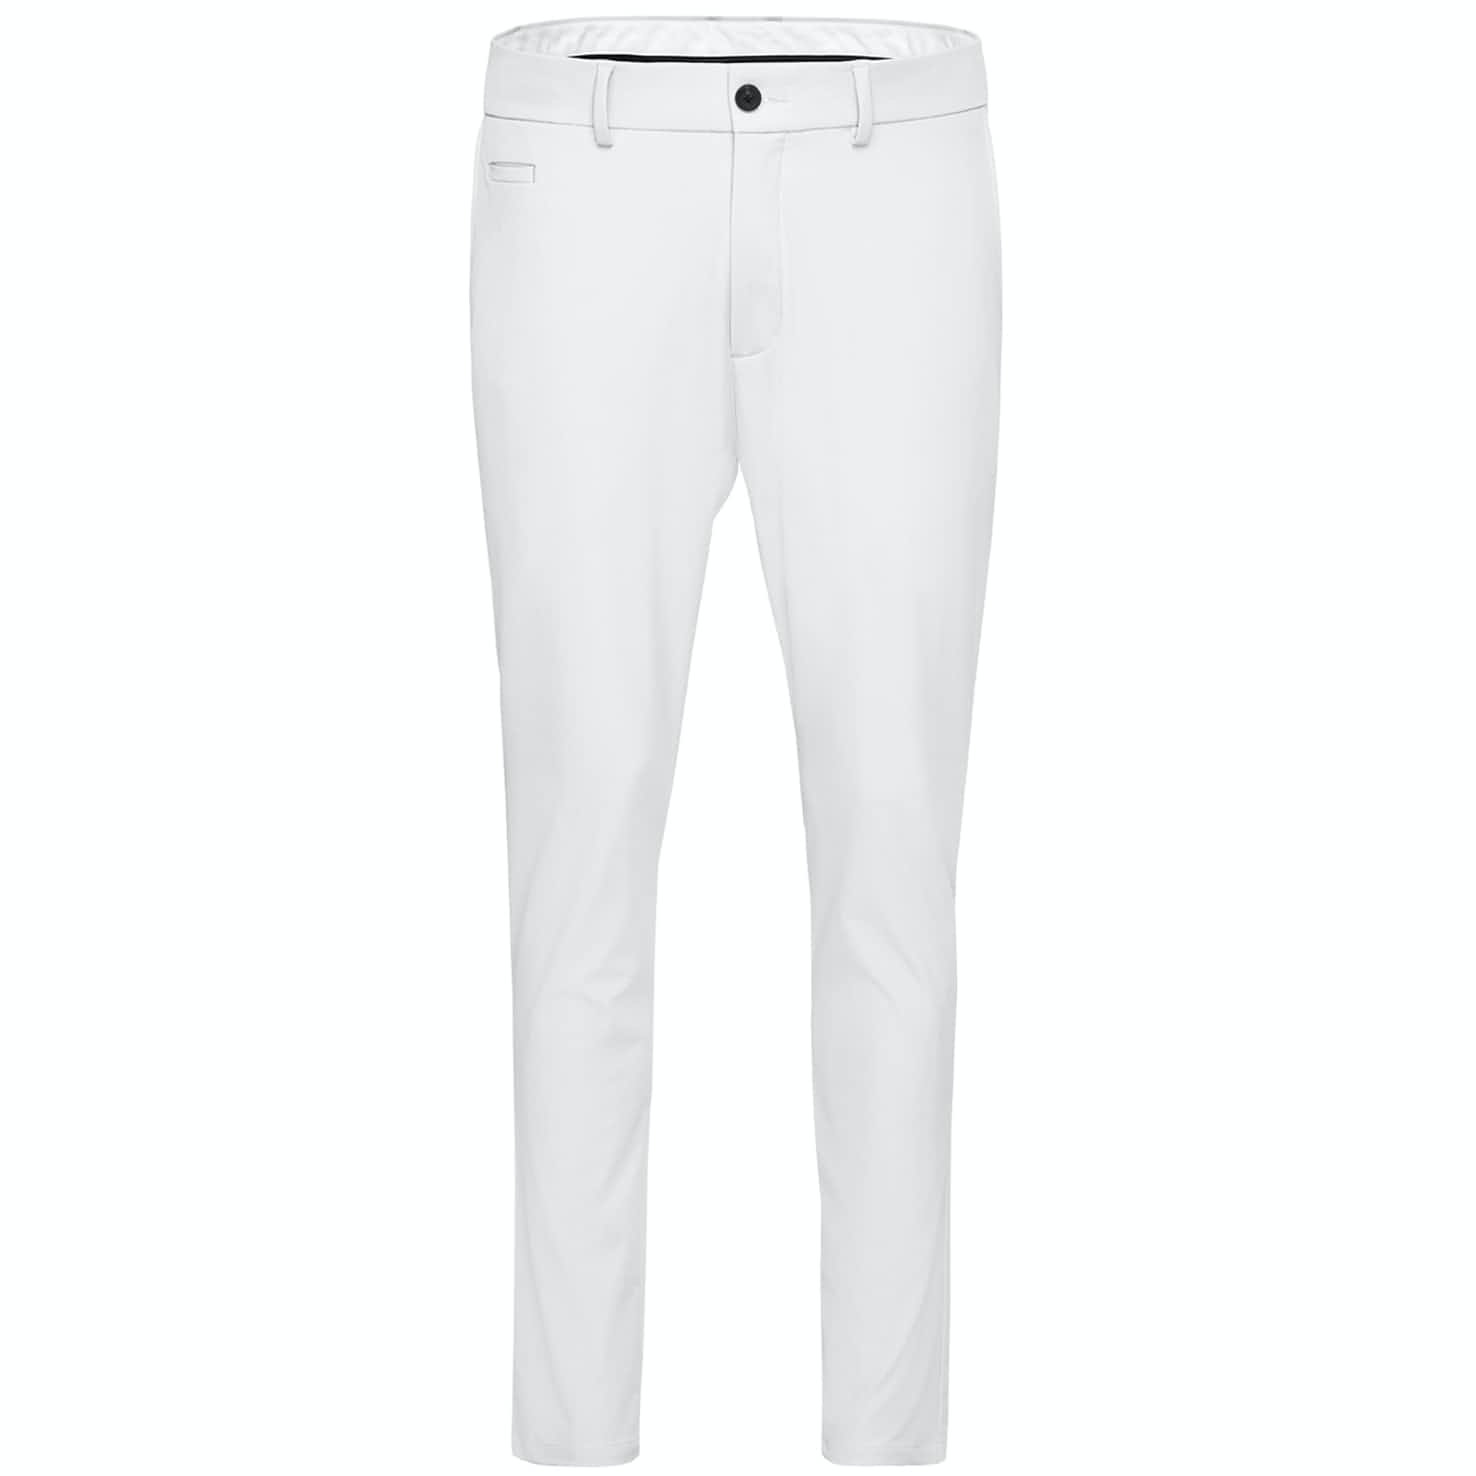 Ike Tailored Fit Trouser White - 2020